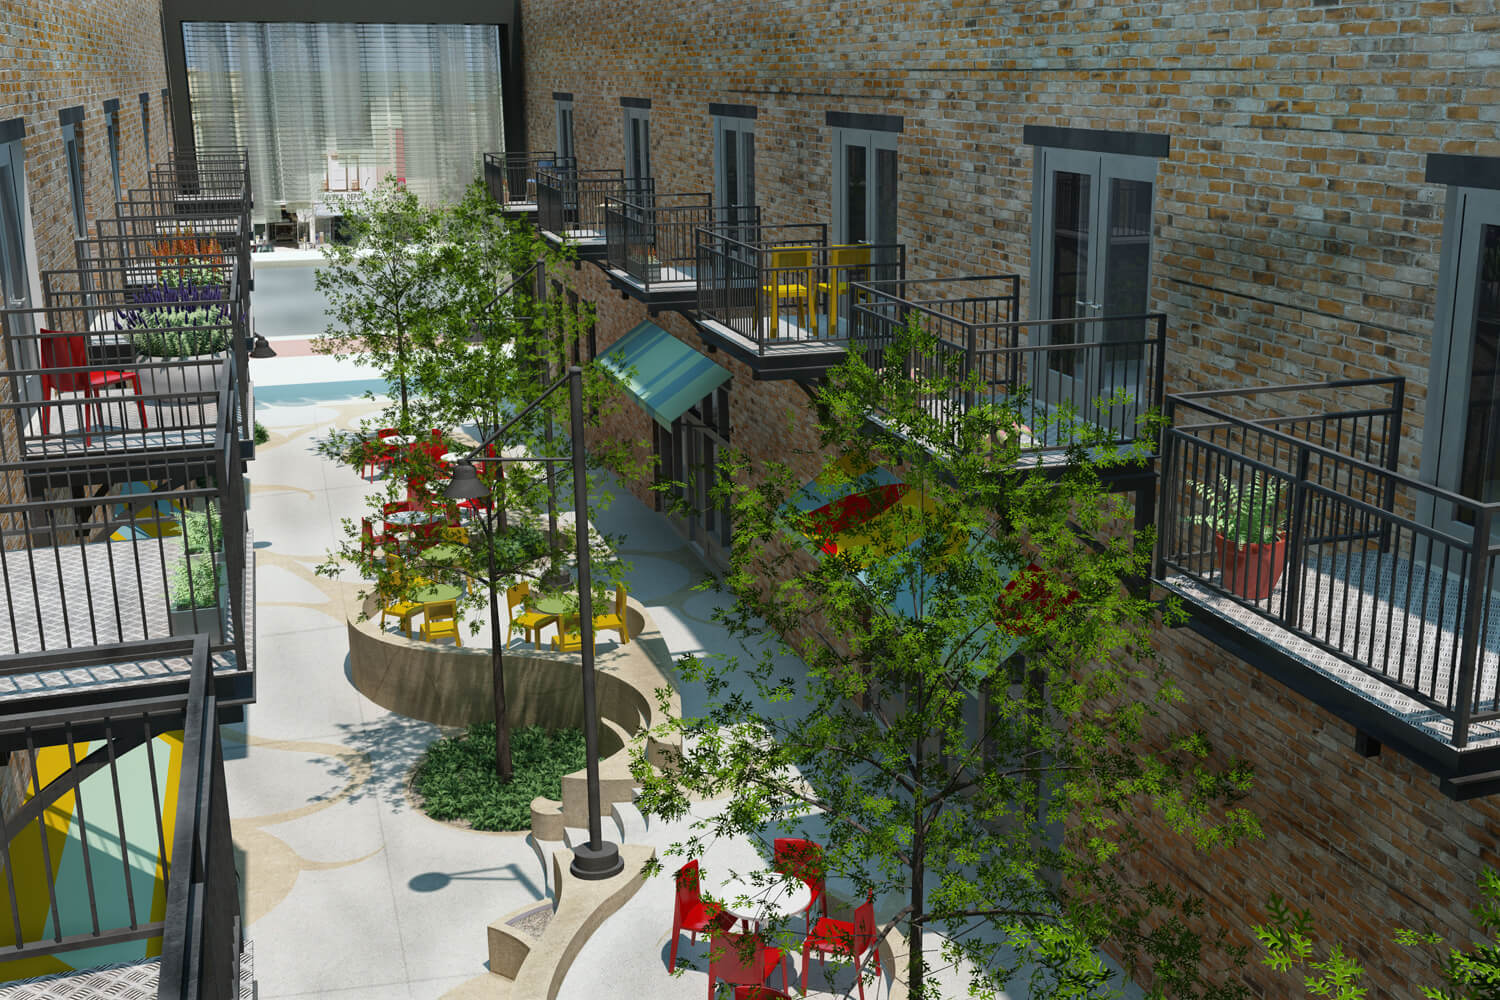 Dexter Alley Park Designed by Foshee Architecture - Exterior Aerial View